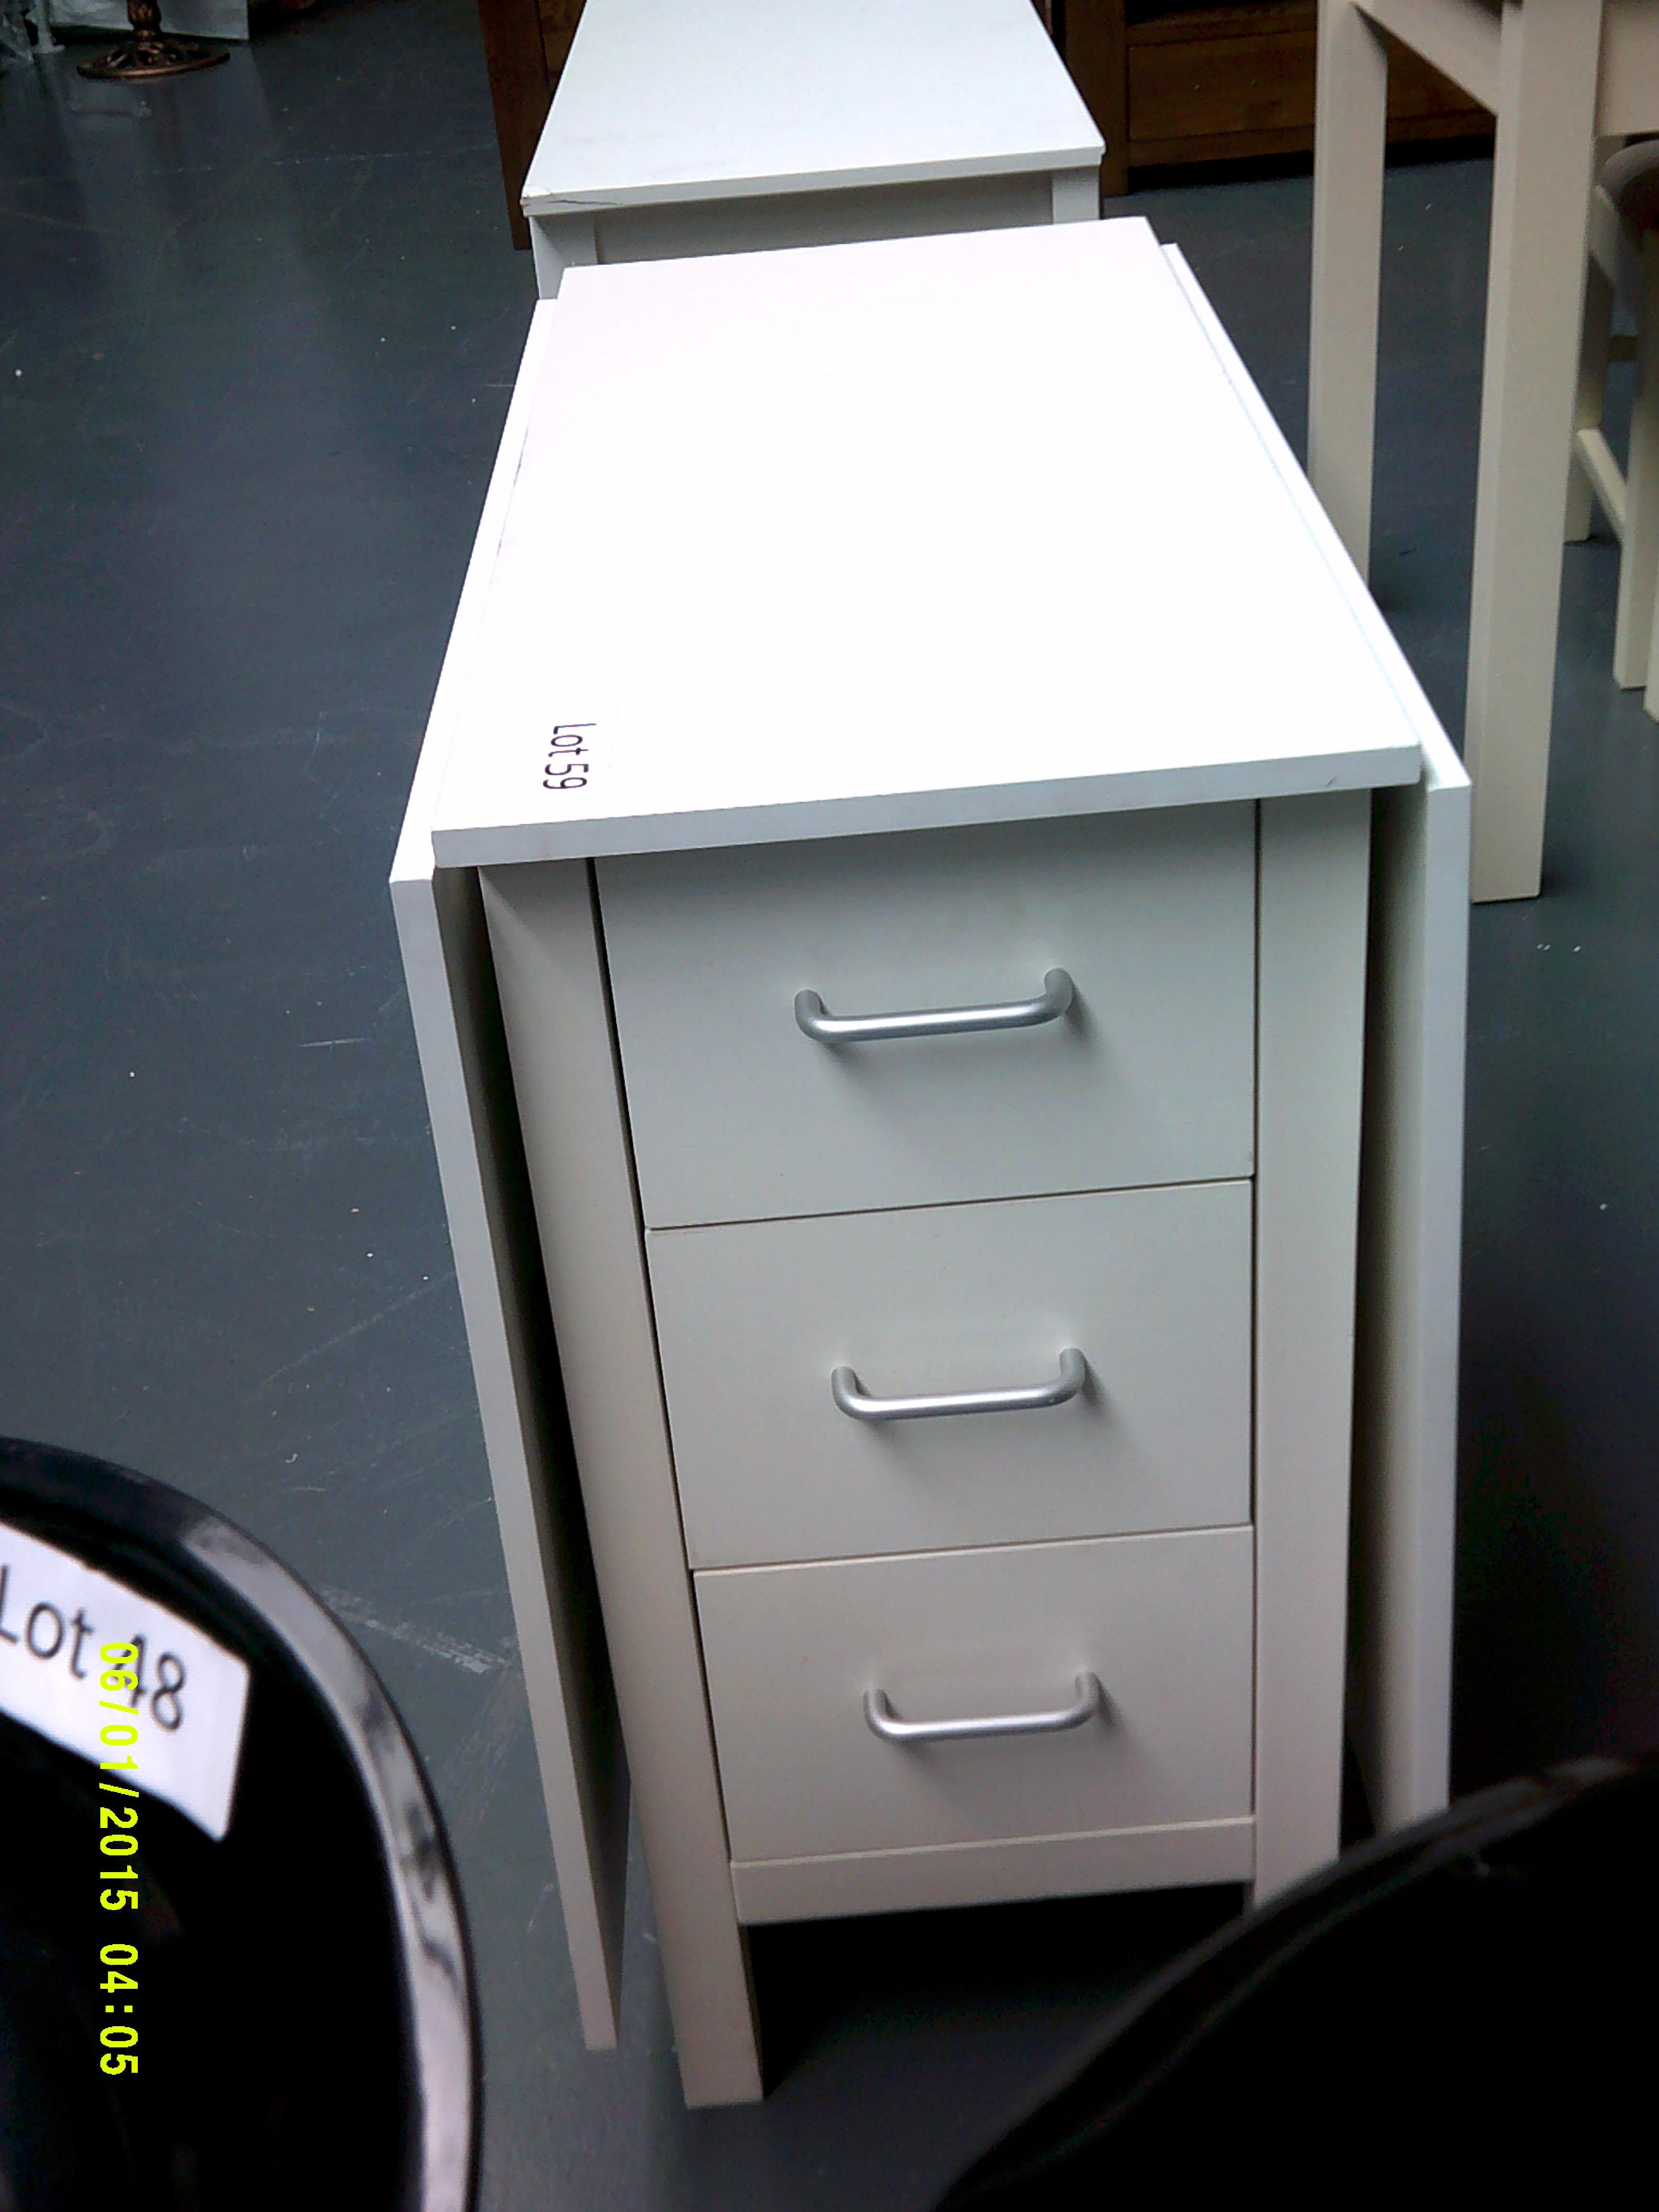 Lot 59 - White Folding table with Drawers Customer Returns